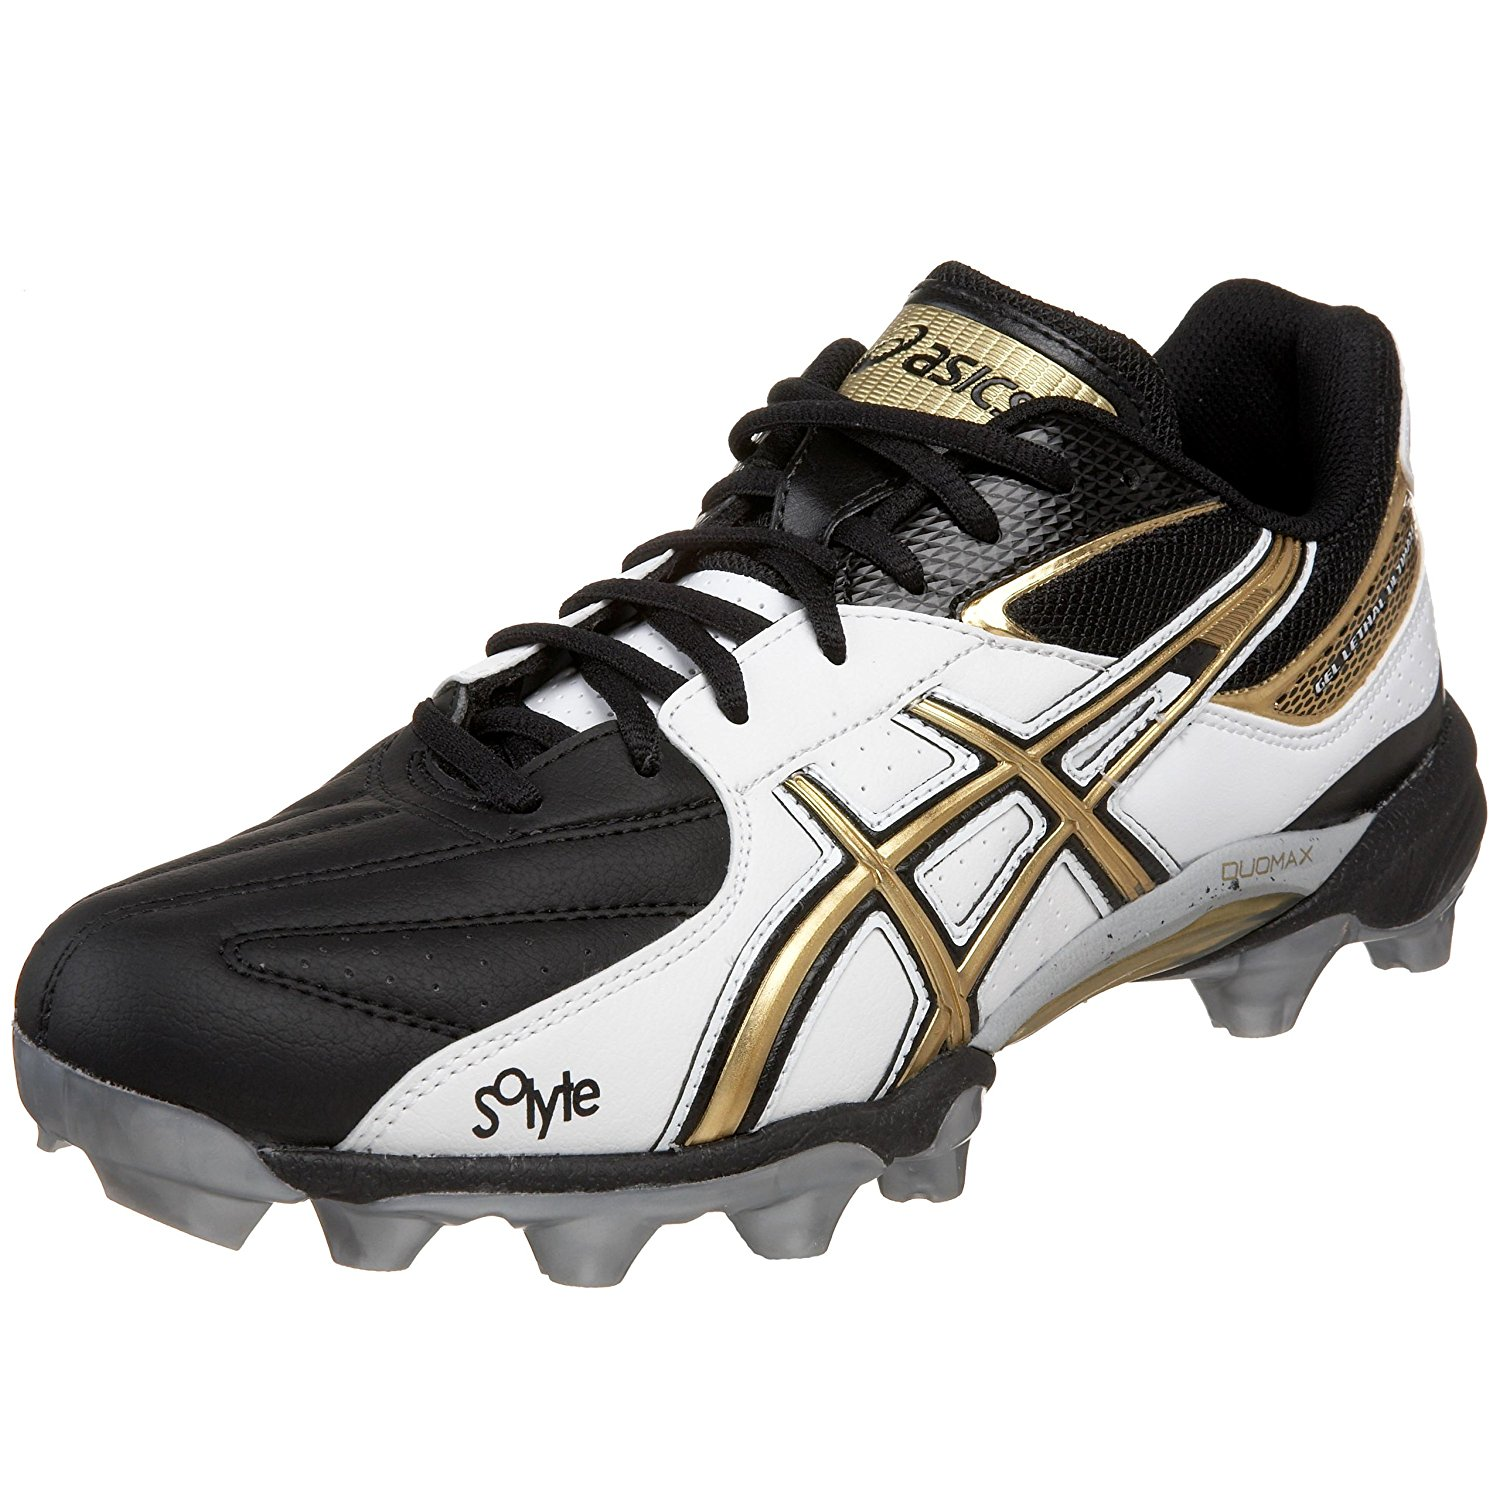 Shoes Price In Ywndqz0 Gel Buy Cheap On Asics Lethal Mp5 Hockey x1HpAT1w